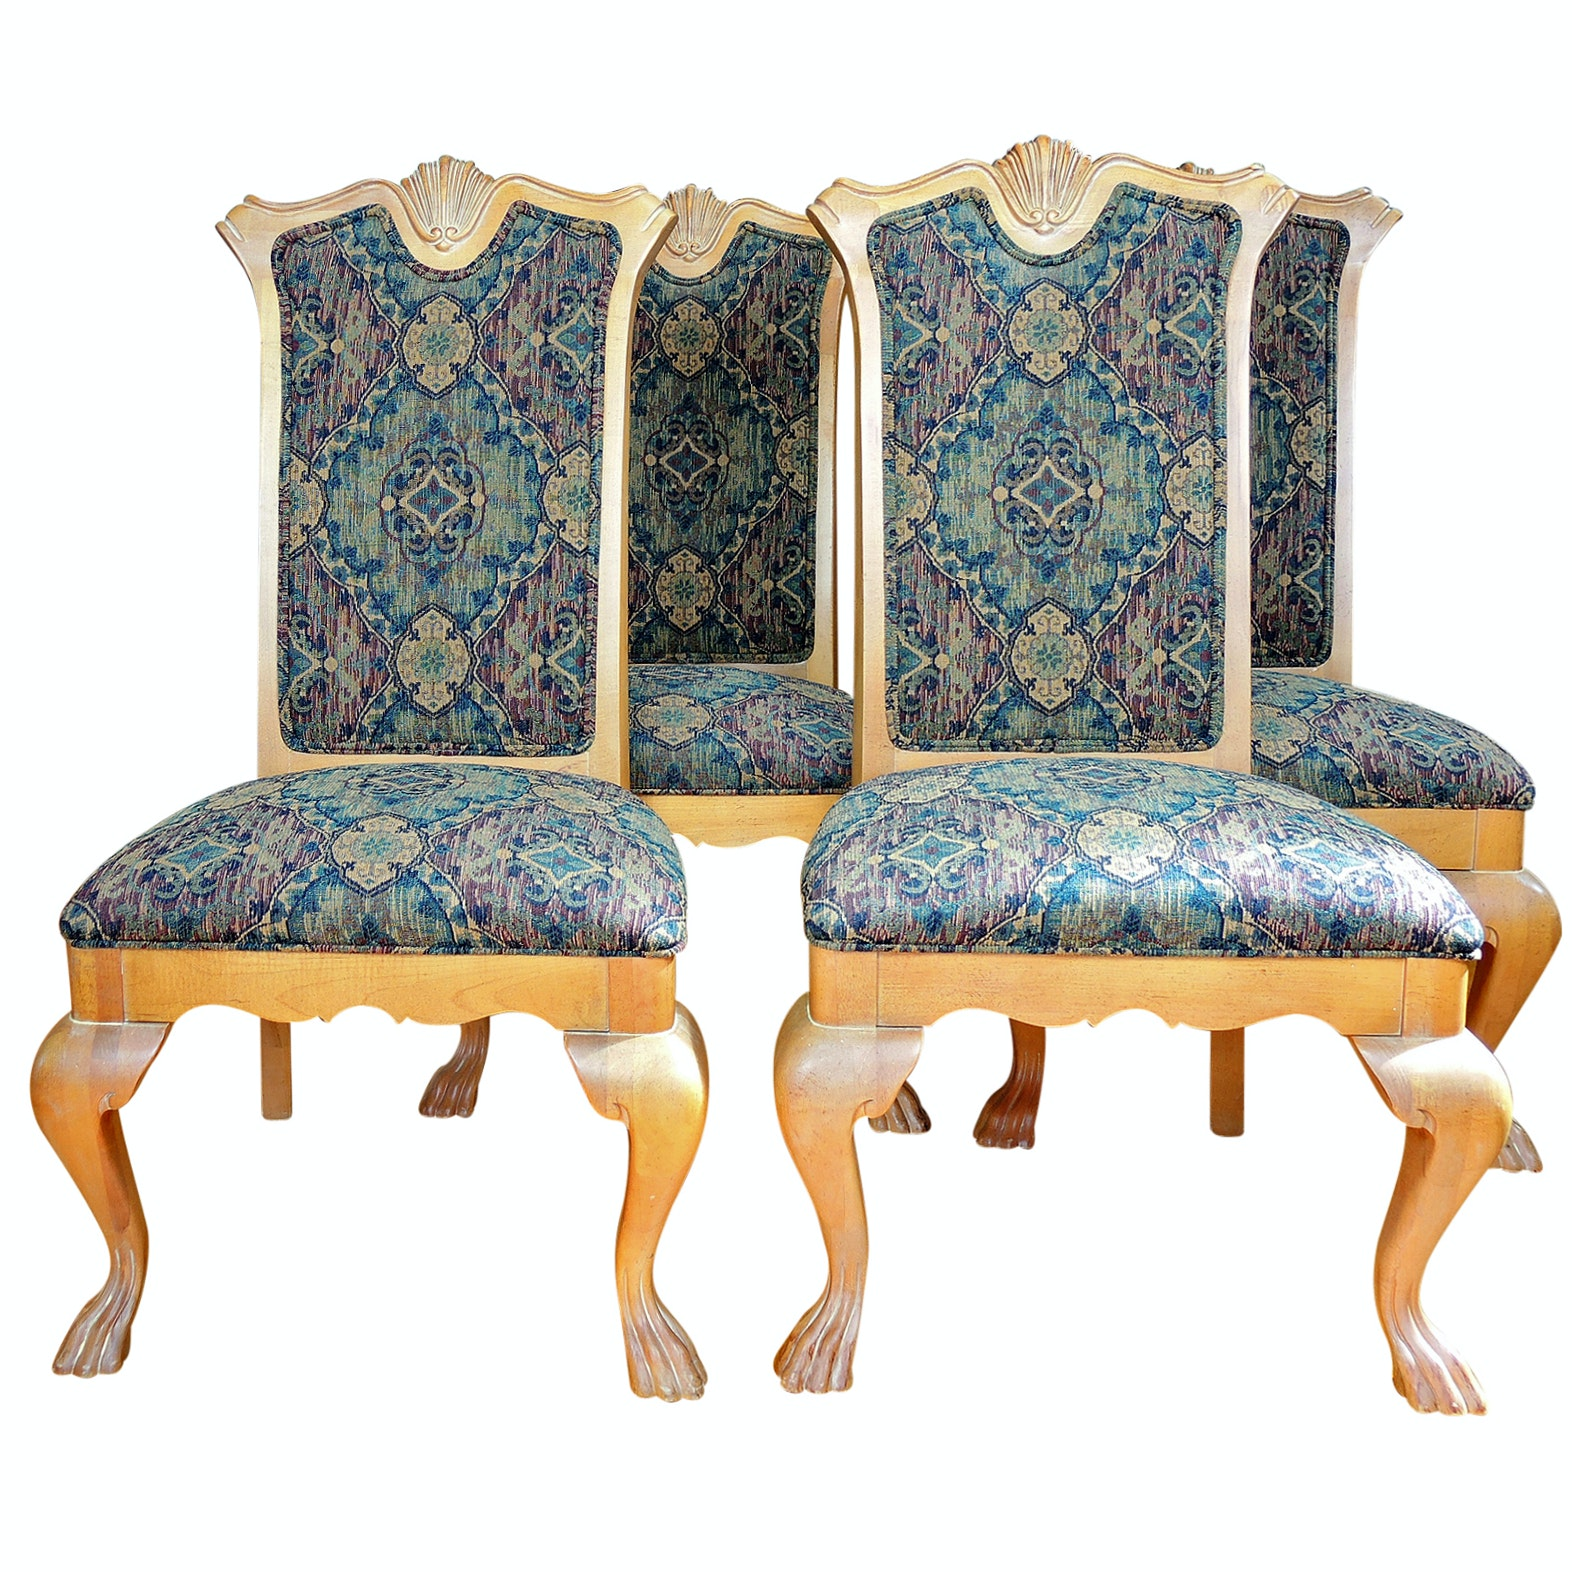 Thomasville Upholstered Dining Chairs Set of Four, Contemporary